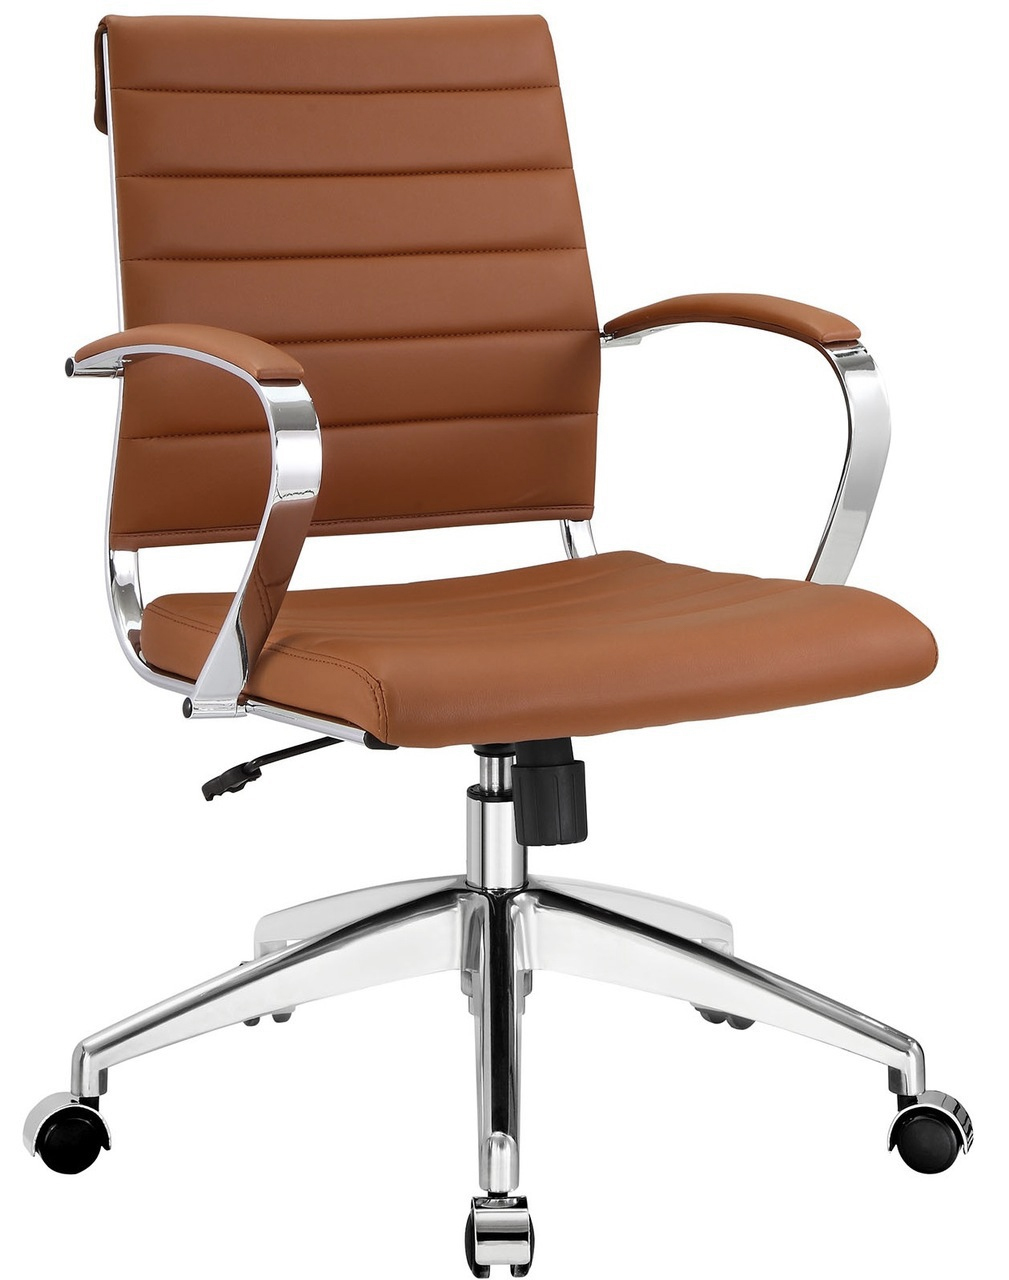 aria leather office chair - advancedinteriordesigns